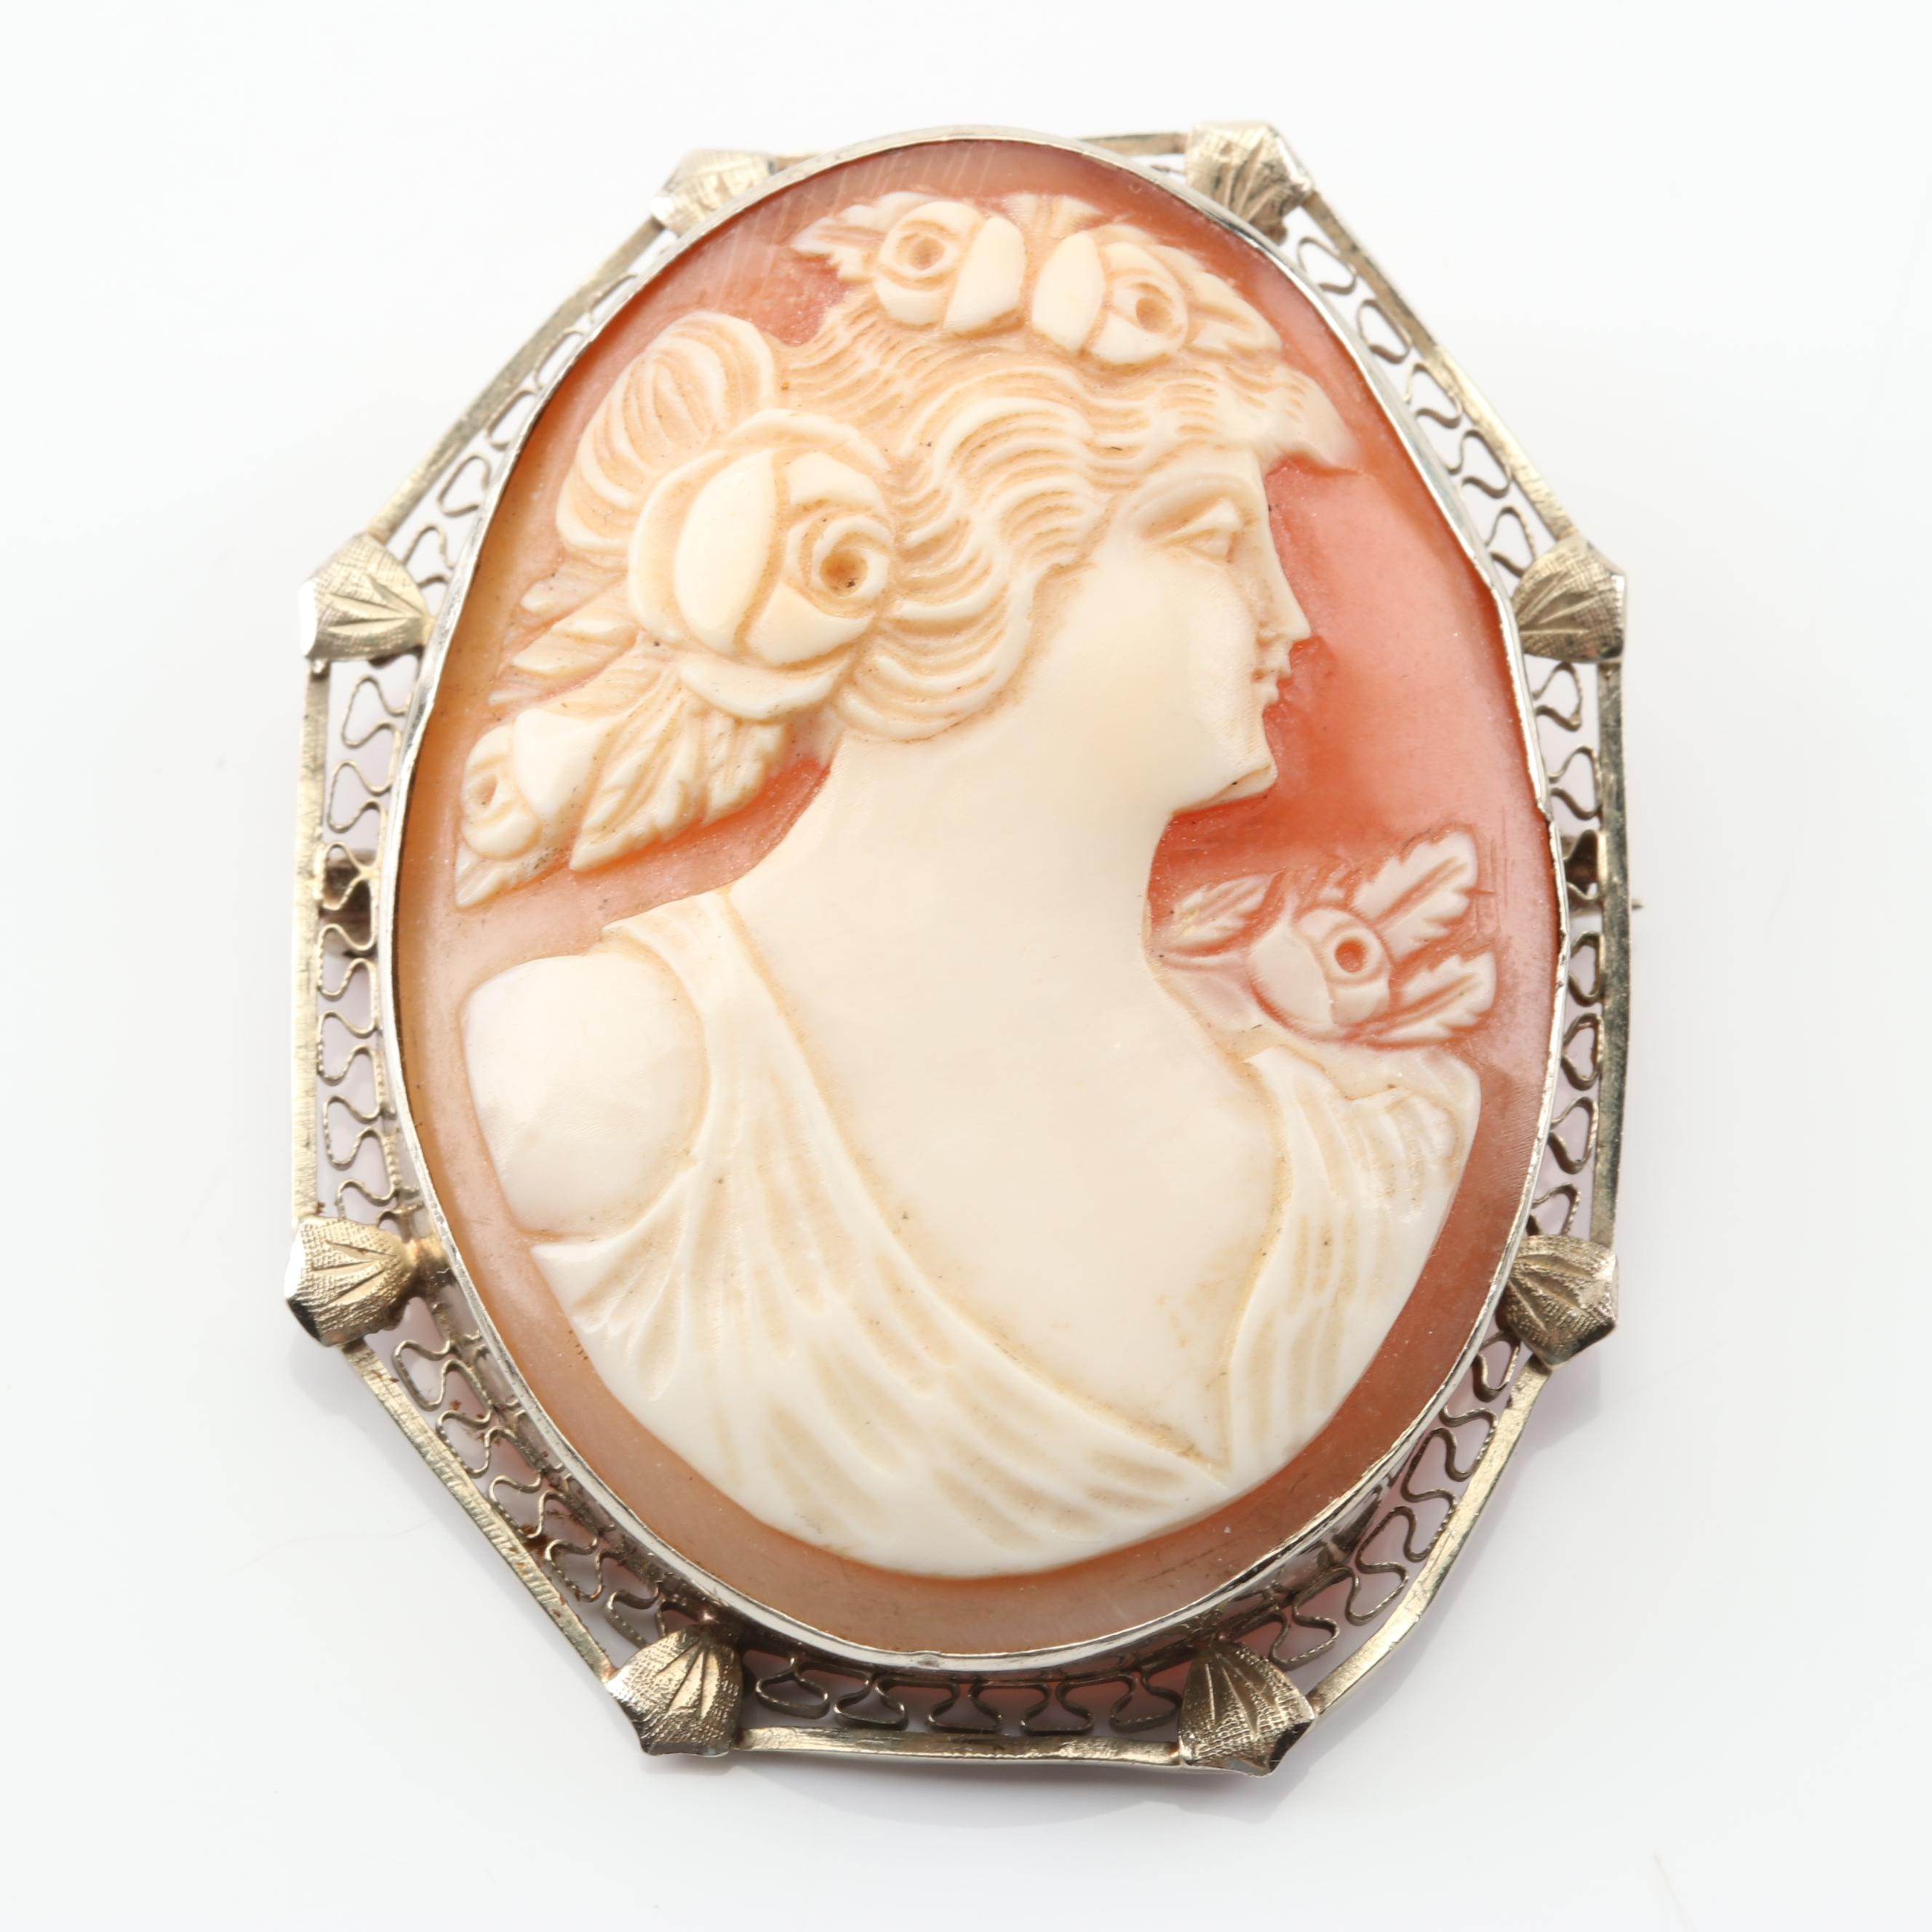 14K White Gold Shell Cameo Brooch